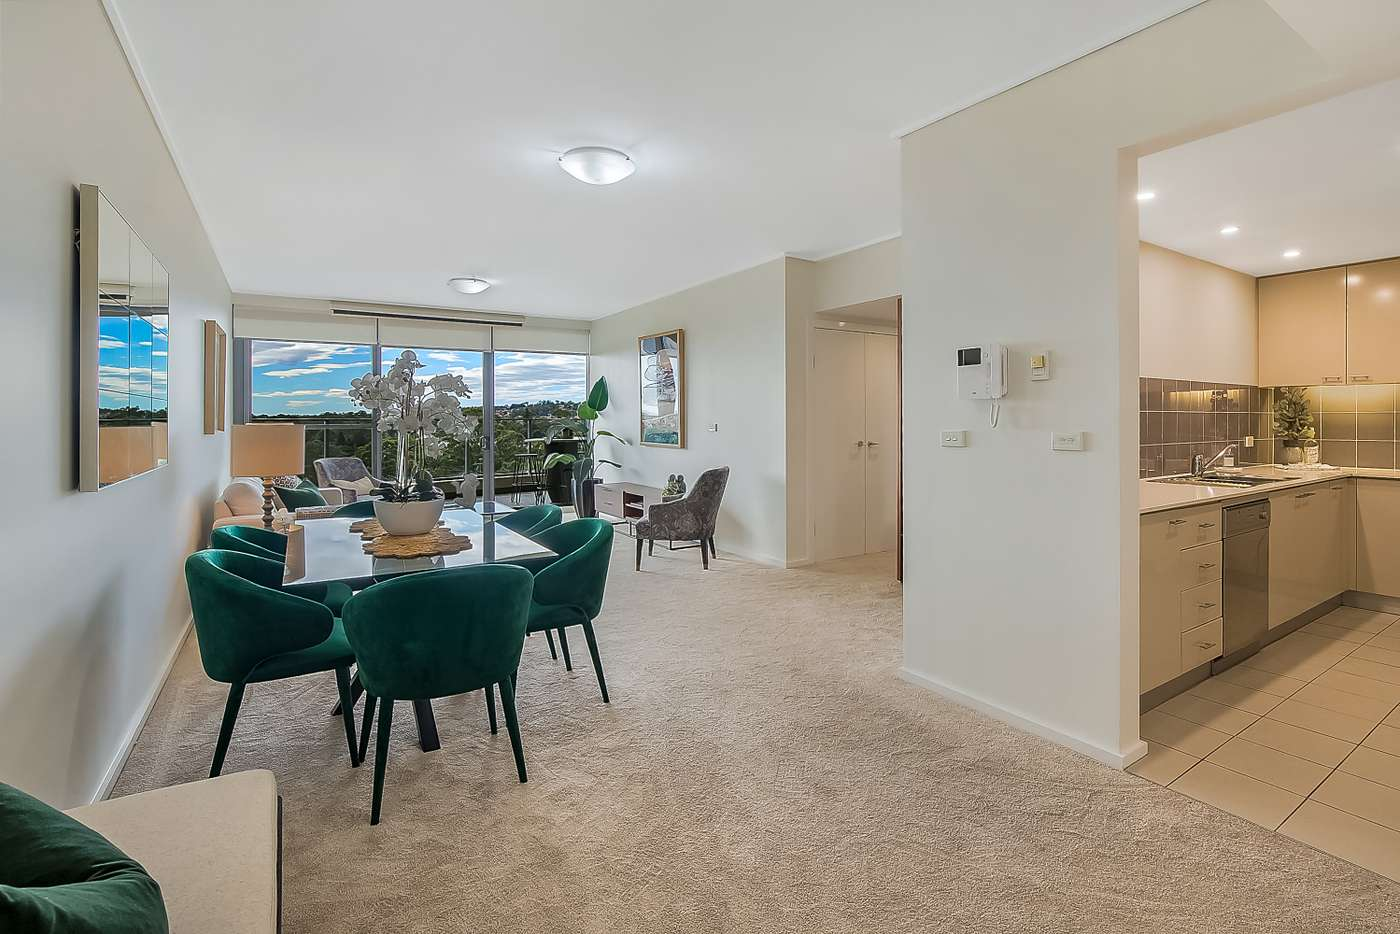 Main view of Homely apartment listing, 705/12 Pennant street, Castle Hill NSW 2154